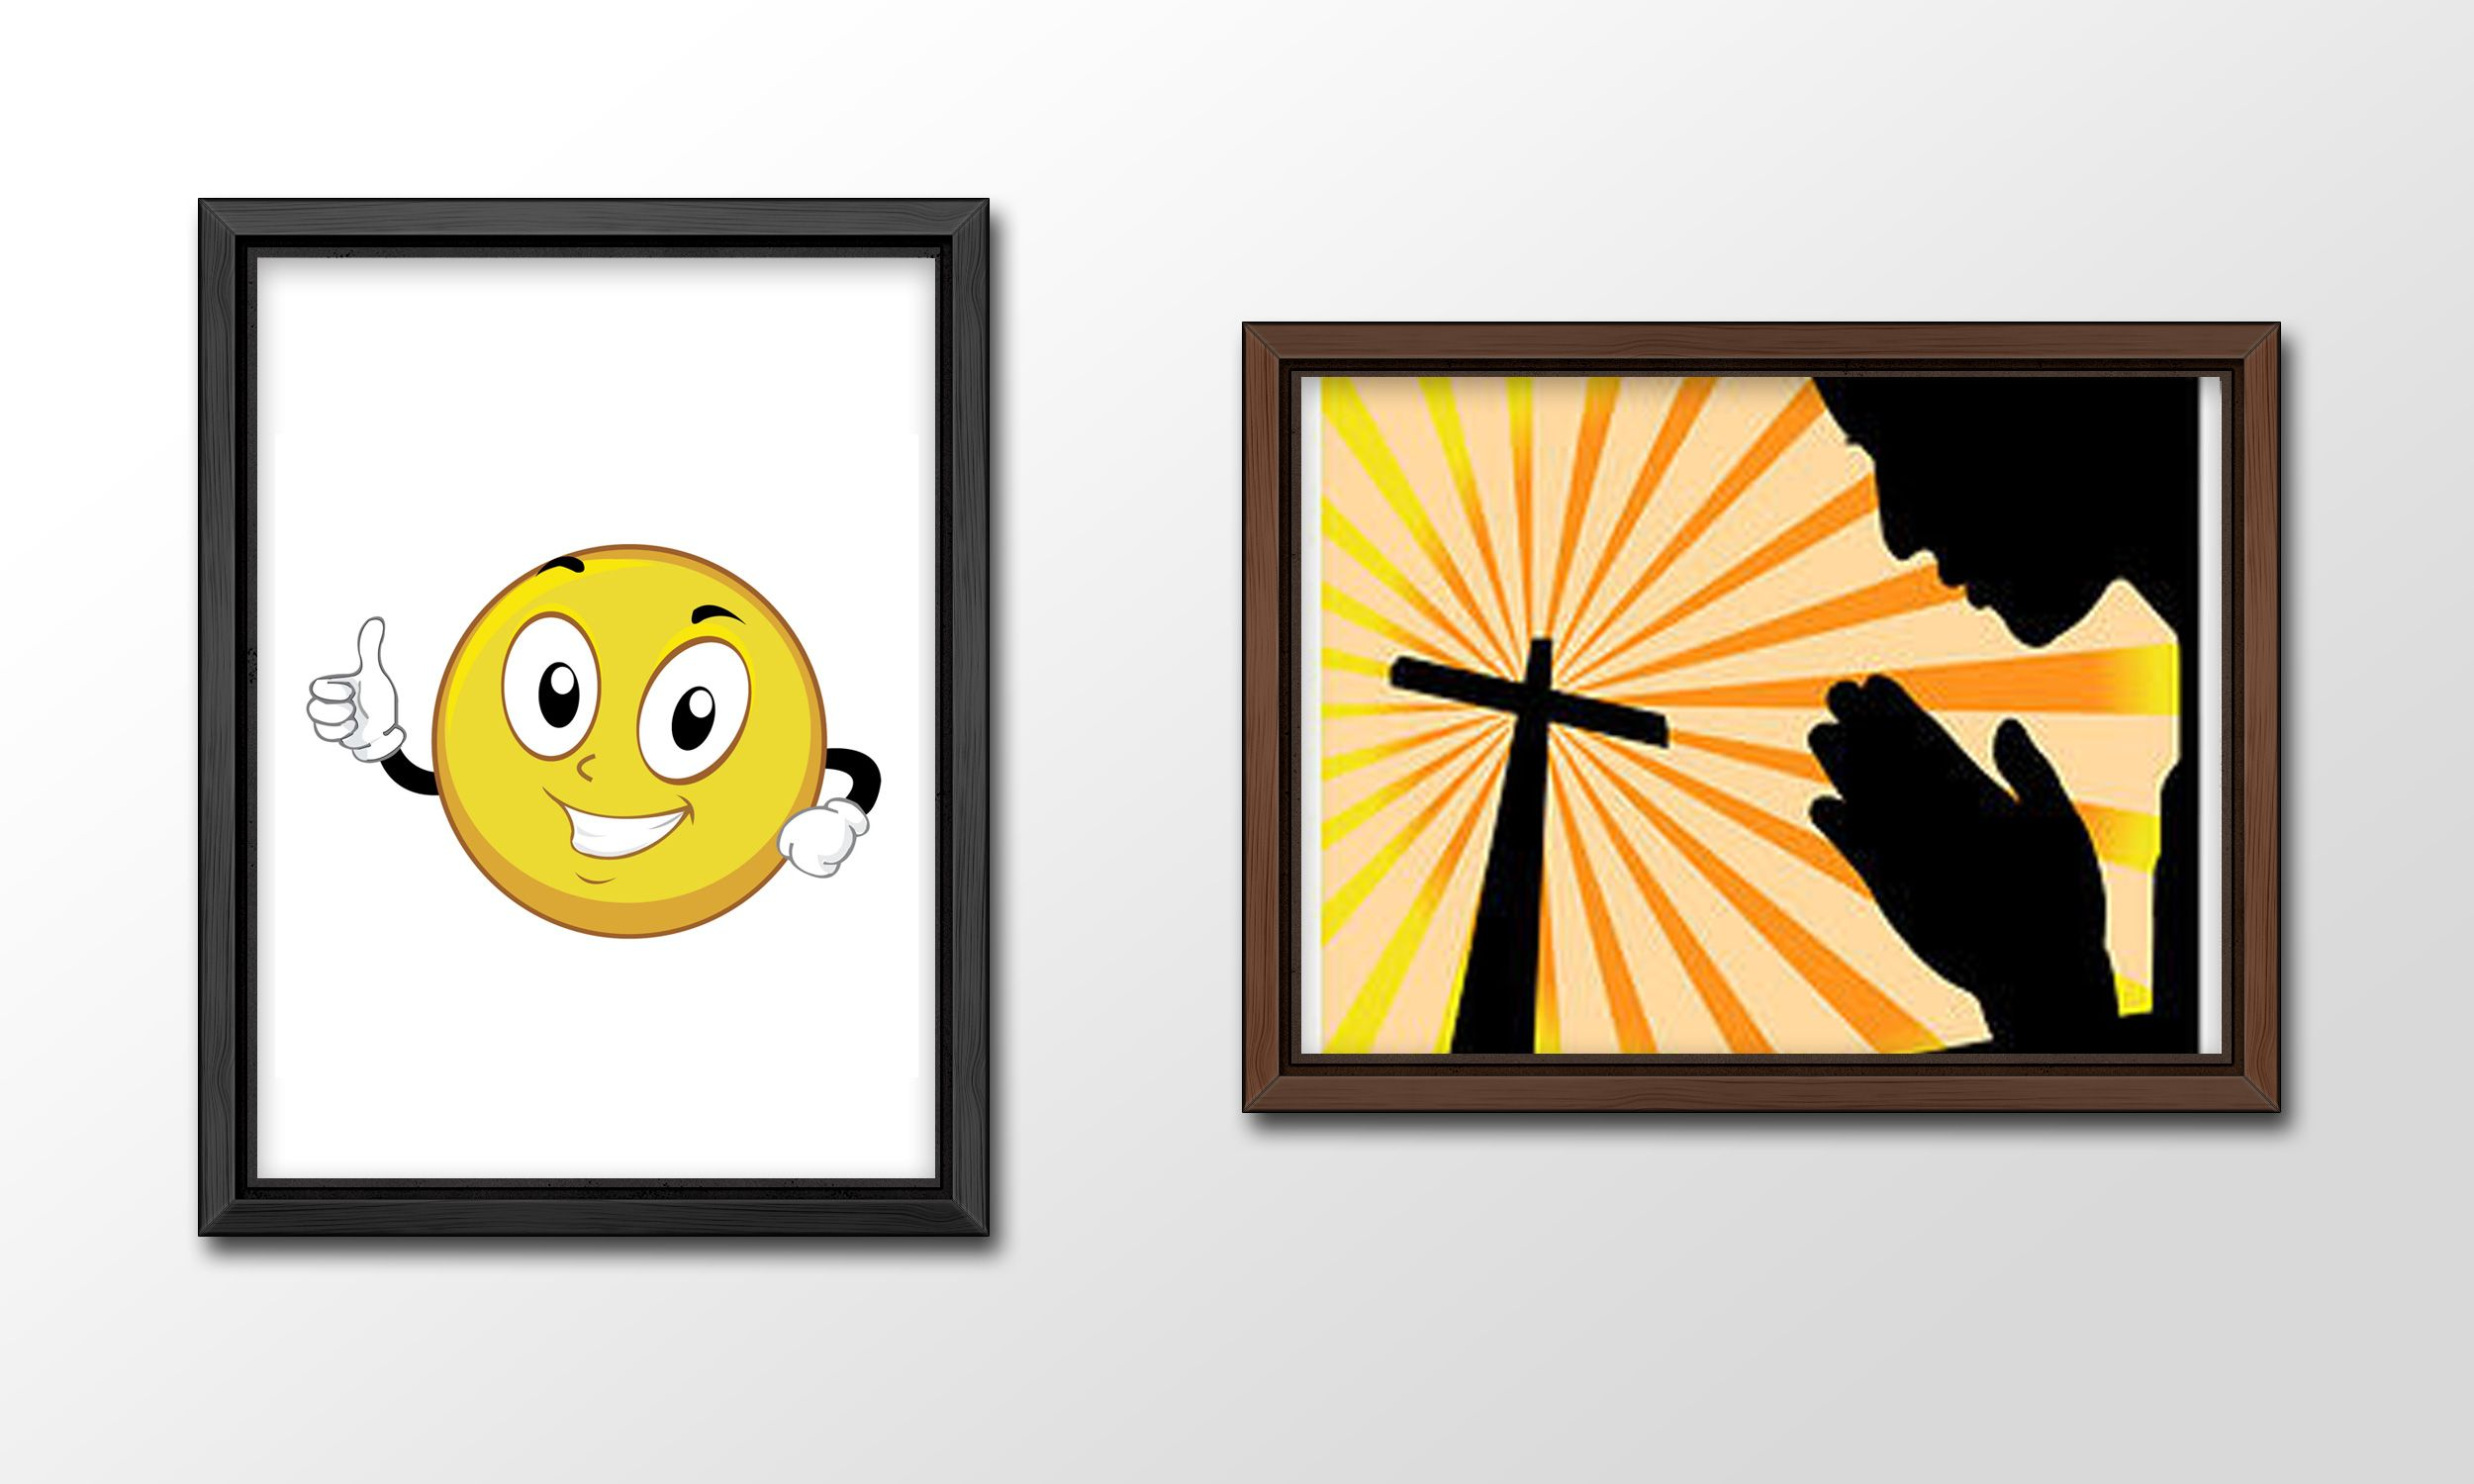 When I first started out as a Graphics Designer, one of the first lessons I learnt was how to use Adobe Illustrator. In order to practice my skills, I took images and recreated them, such as this smiley and praying to a cross.